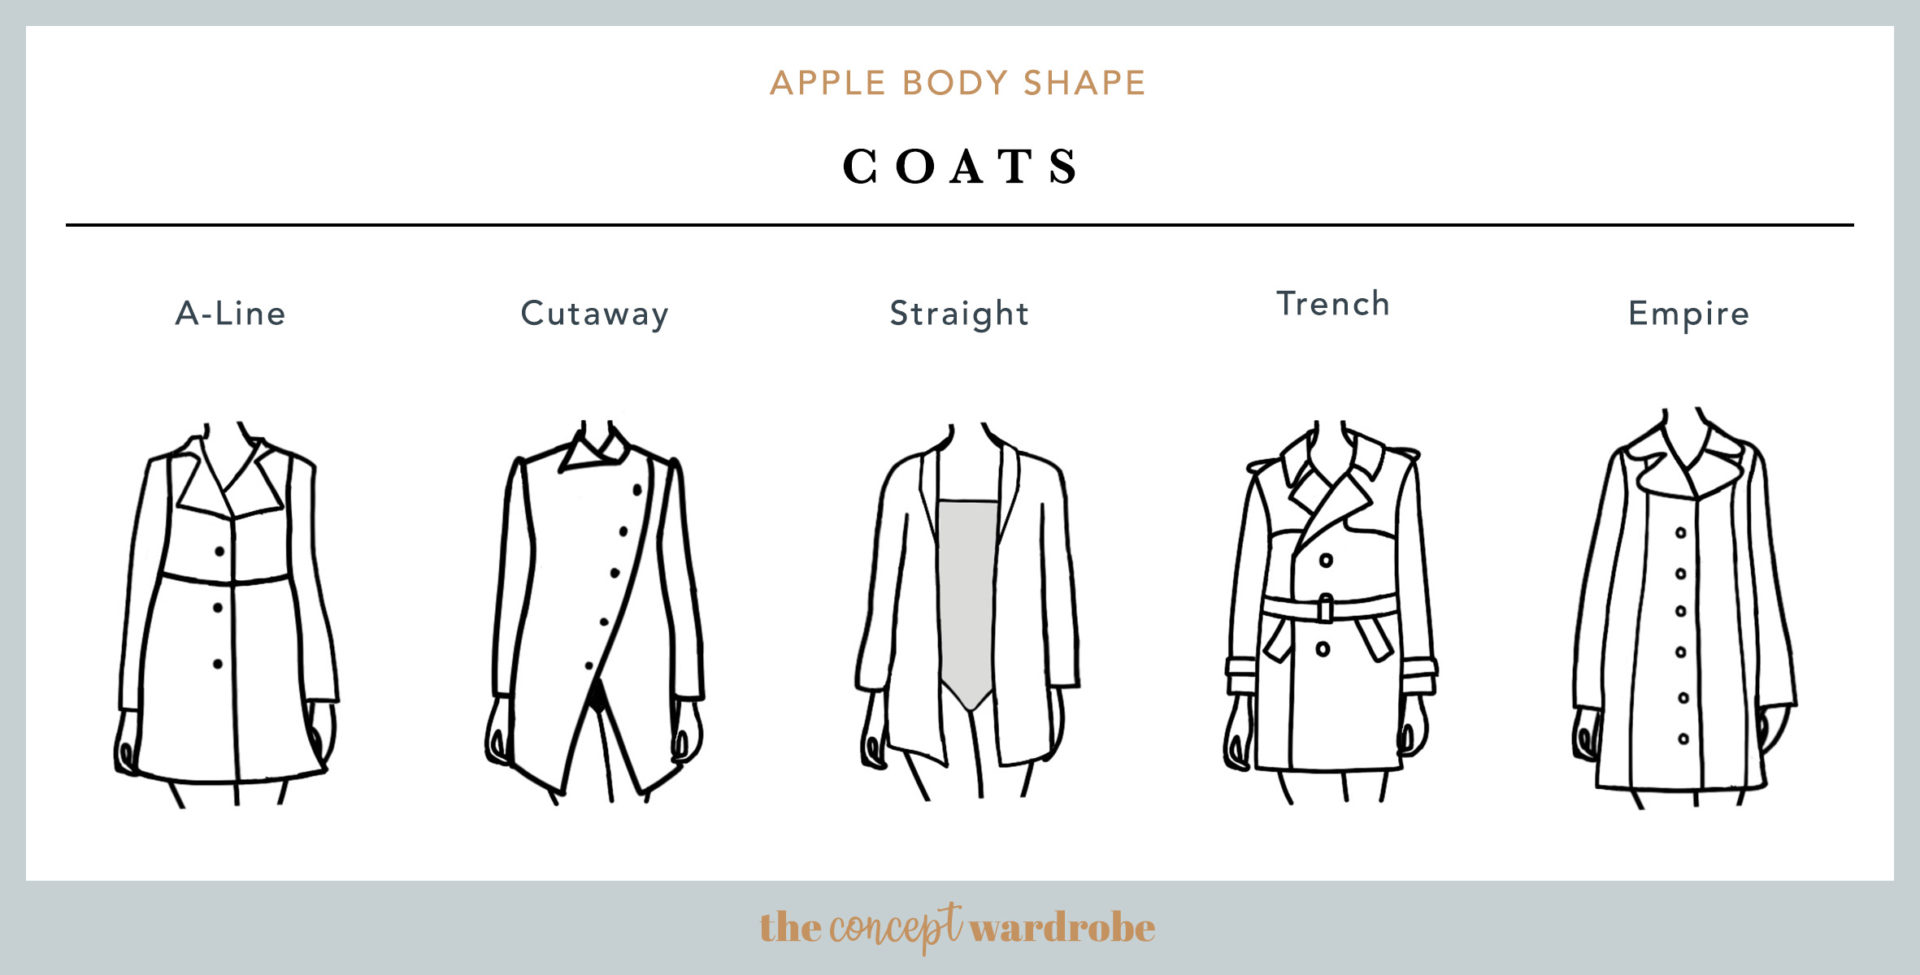 Apple Body Shape Coats - the concept wardrobe